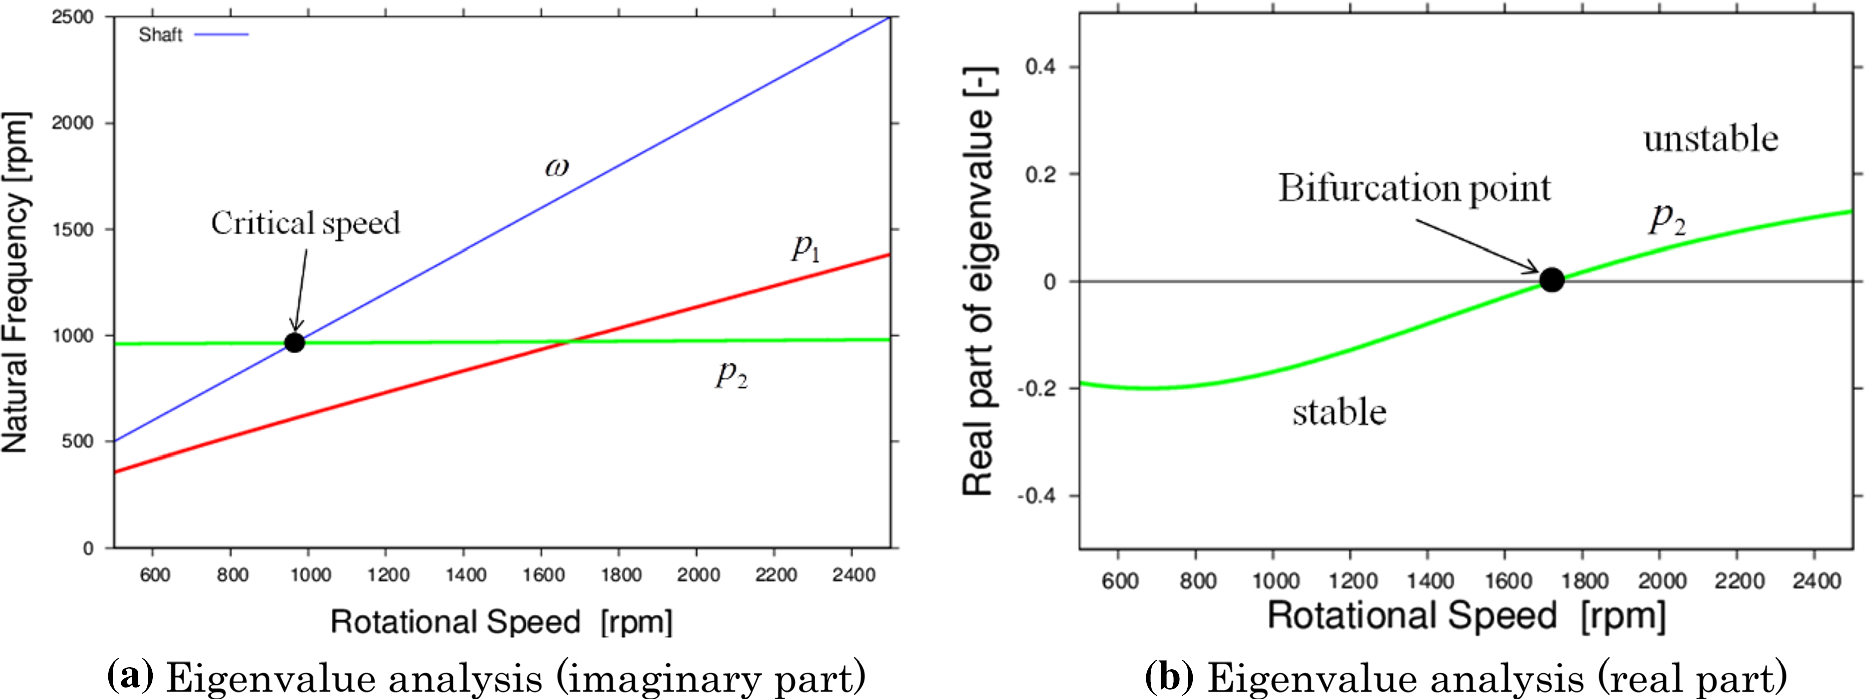 Order reduction and bifurcation analysis of a flexible rotor system